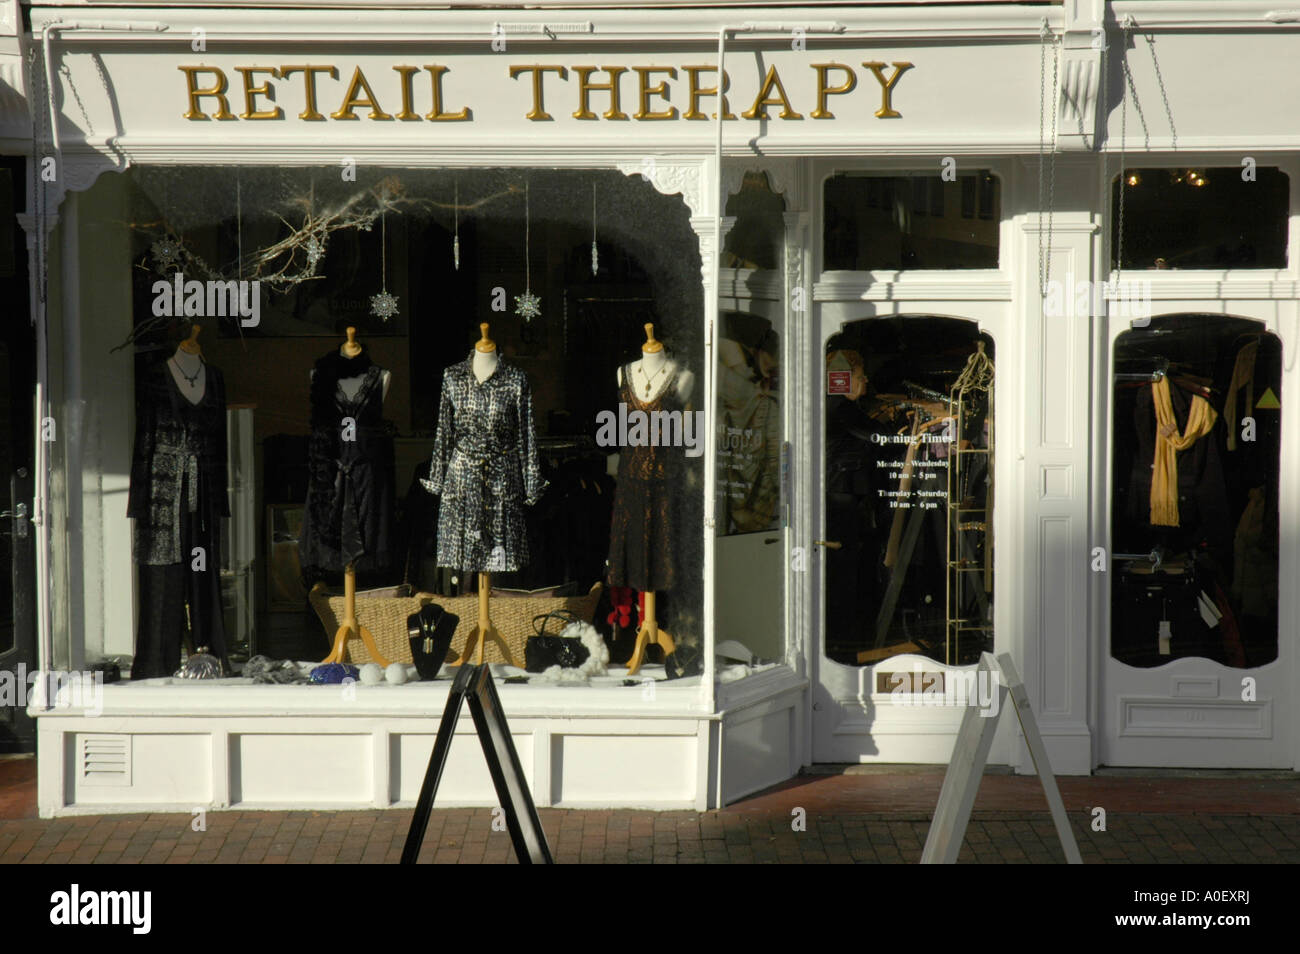 Front of shop called Retail Therapy showing the name - Stock Image